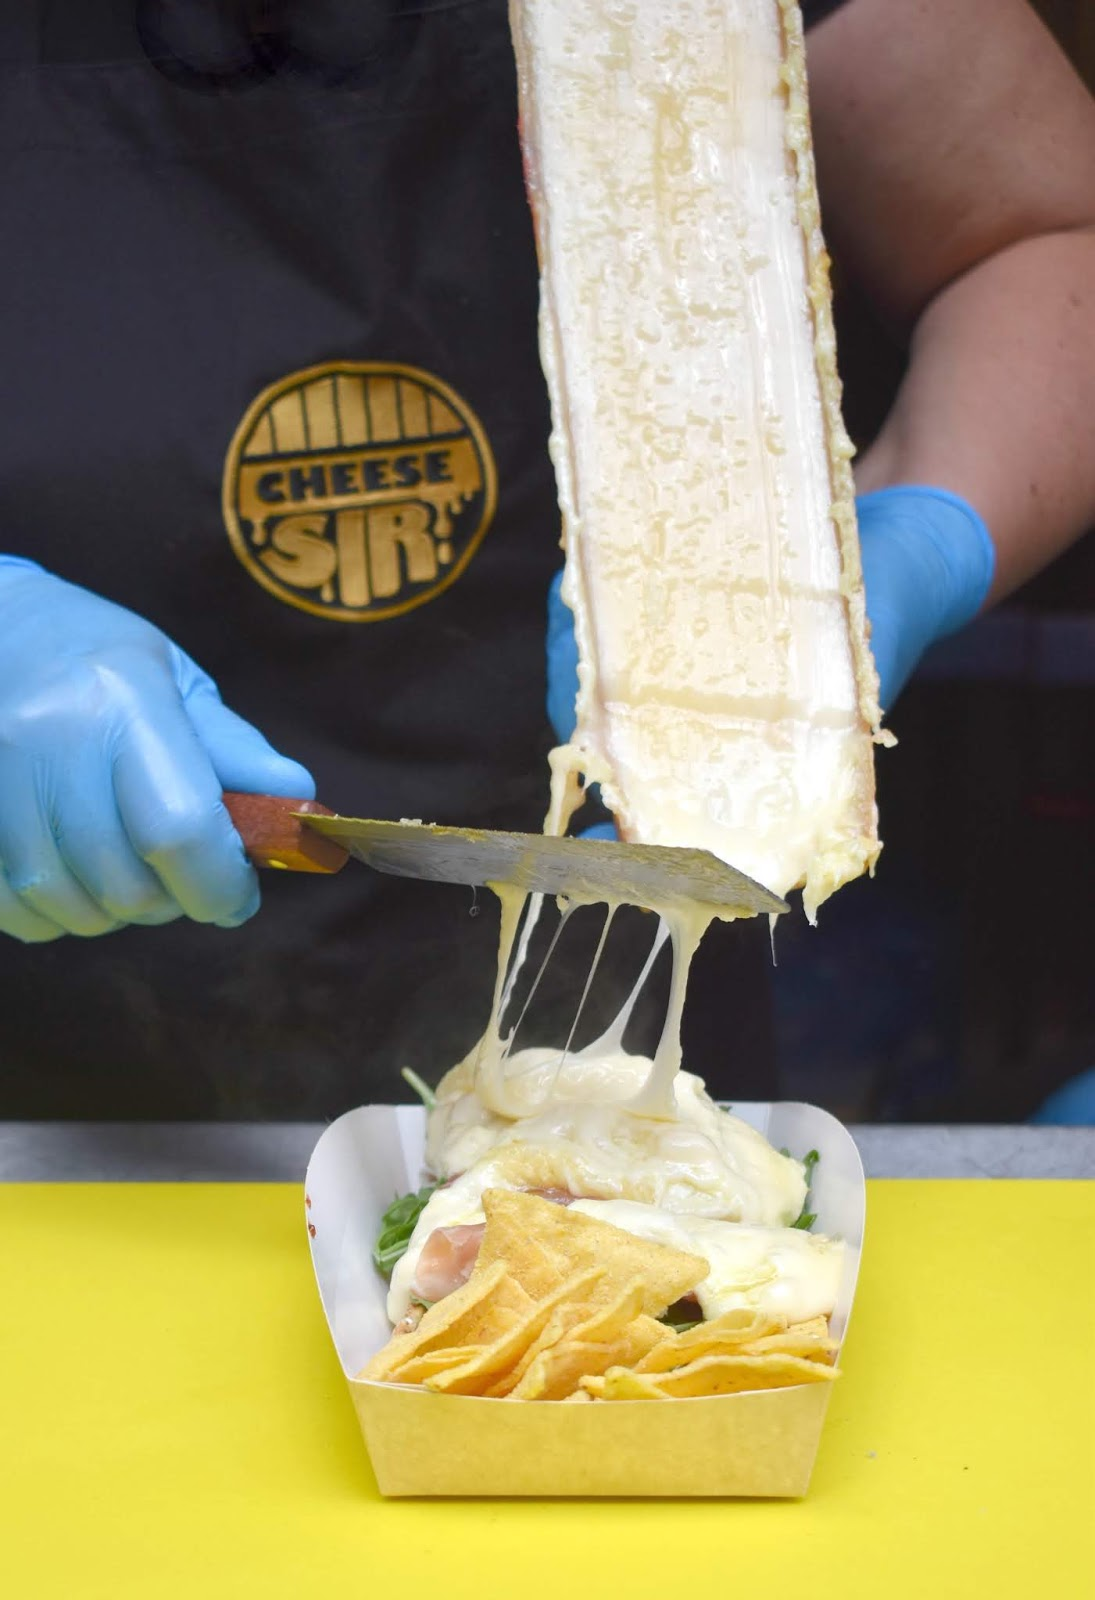 The Best Street Food in Newcastle! HWKRMRKT, By the River  - Cheese Sir